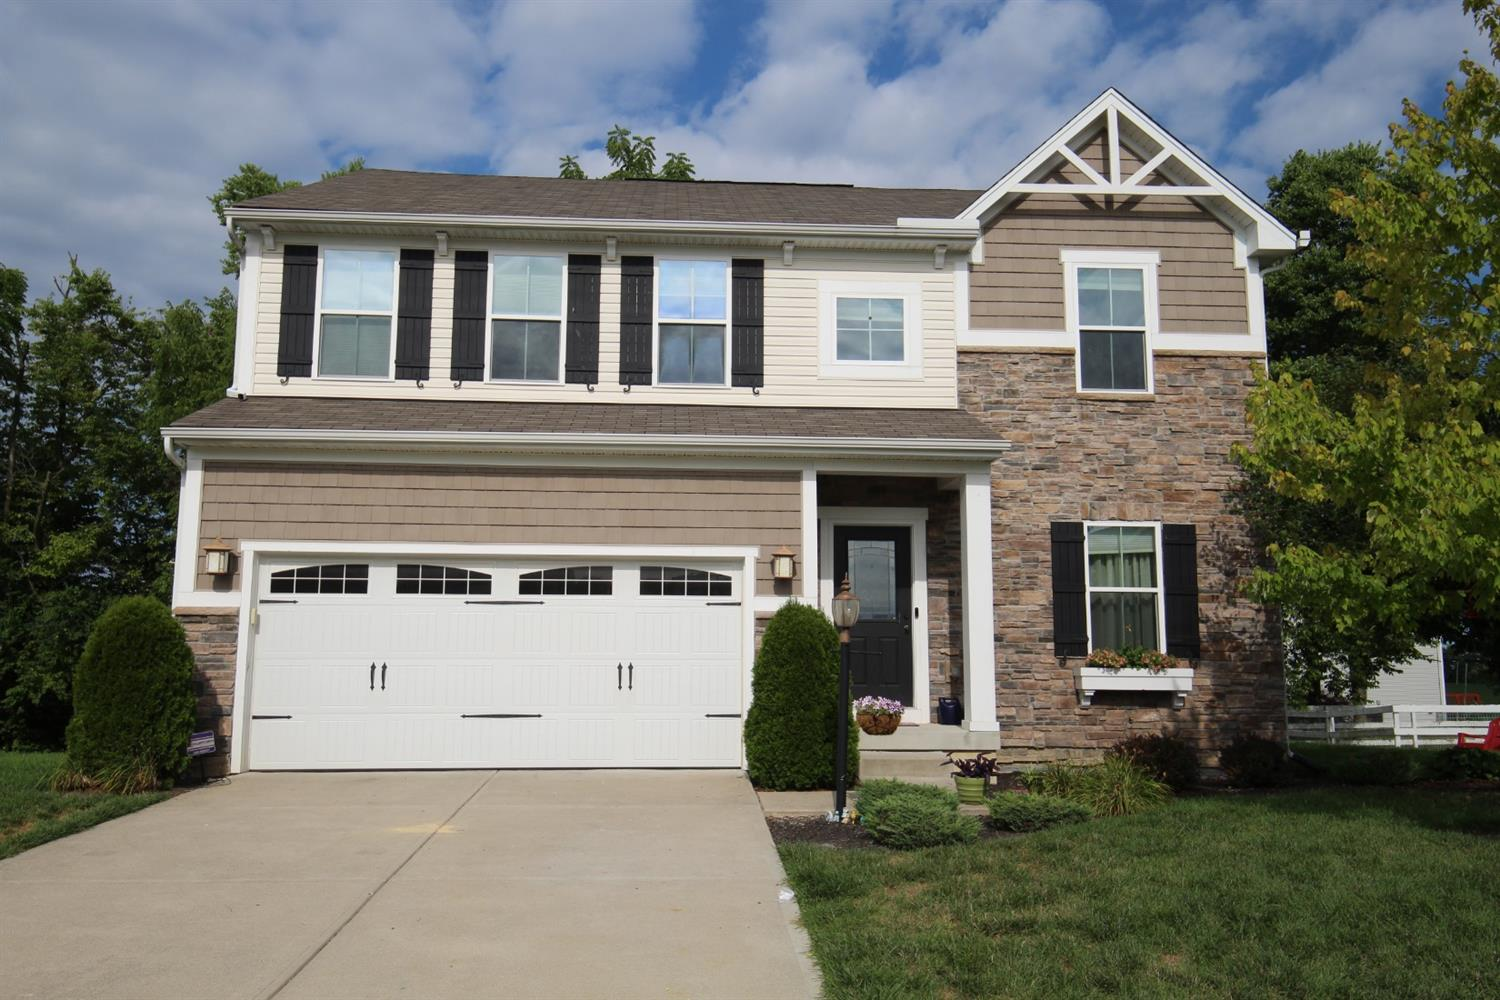 Property for sale at 9962 Scotch Pine Drive, Clearcreek Twp.,  Ohio 45066